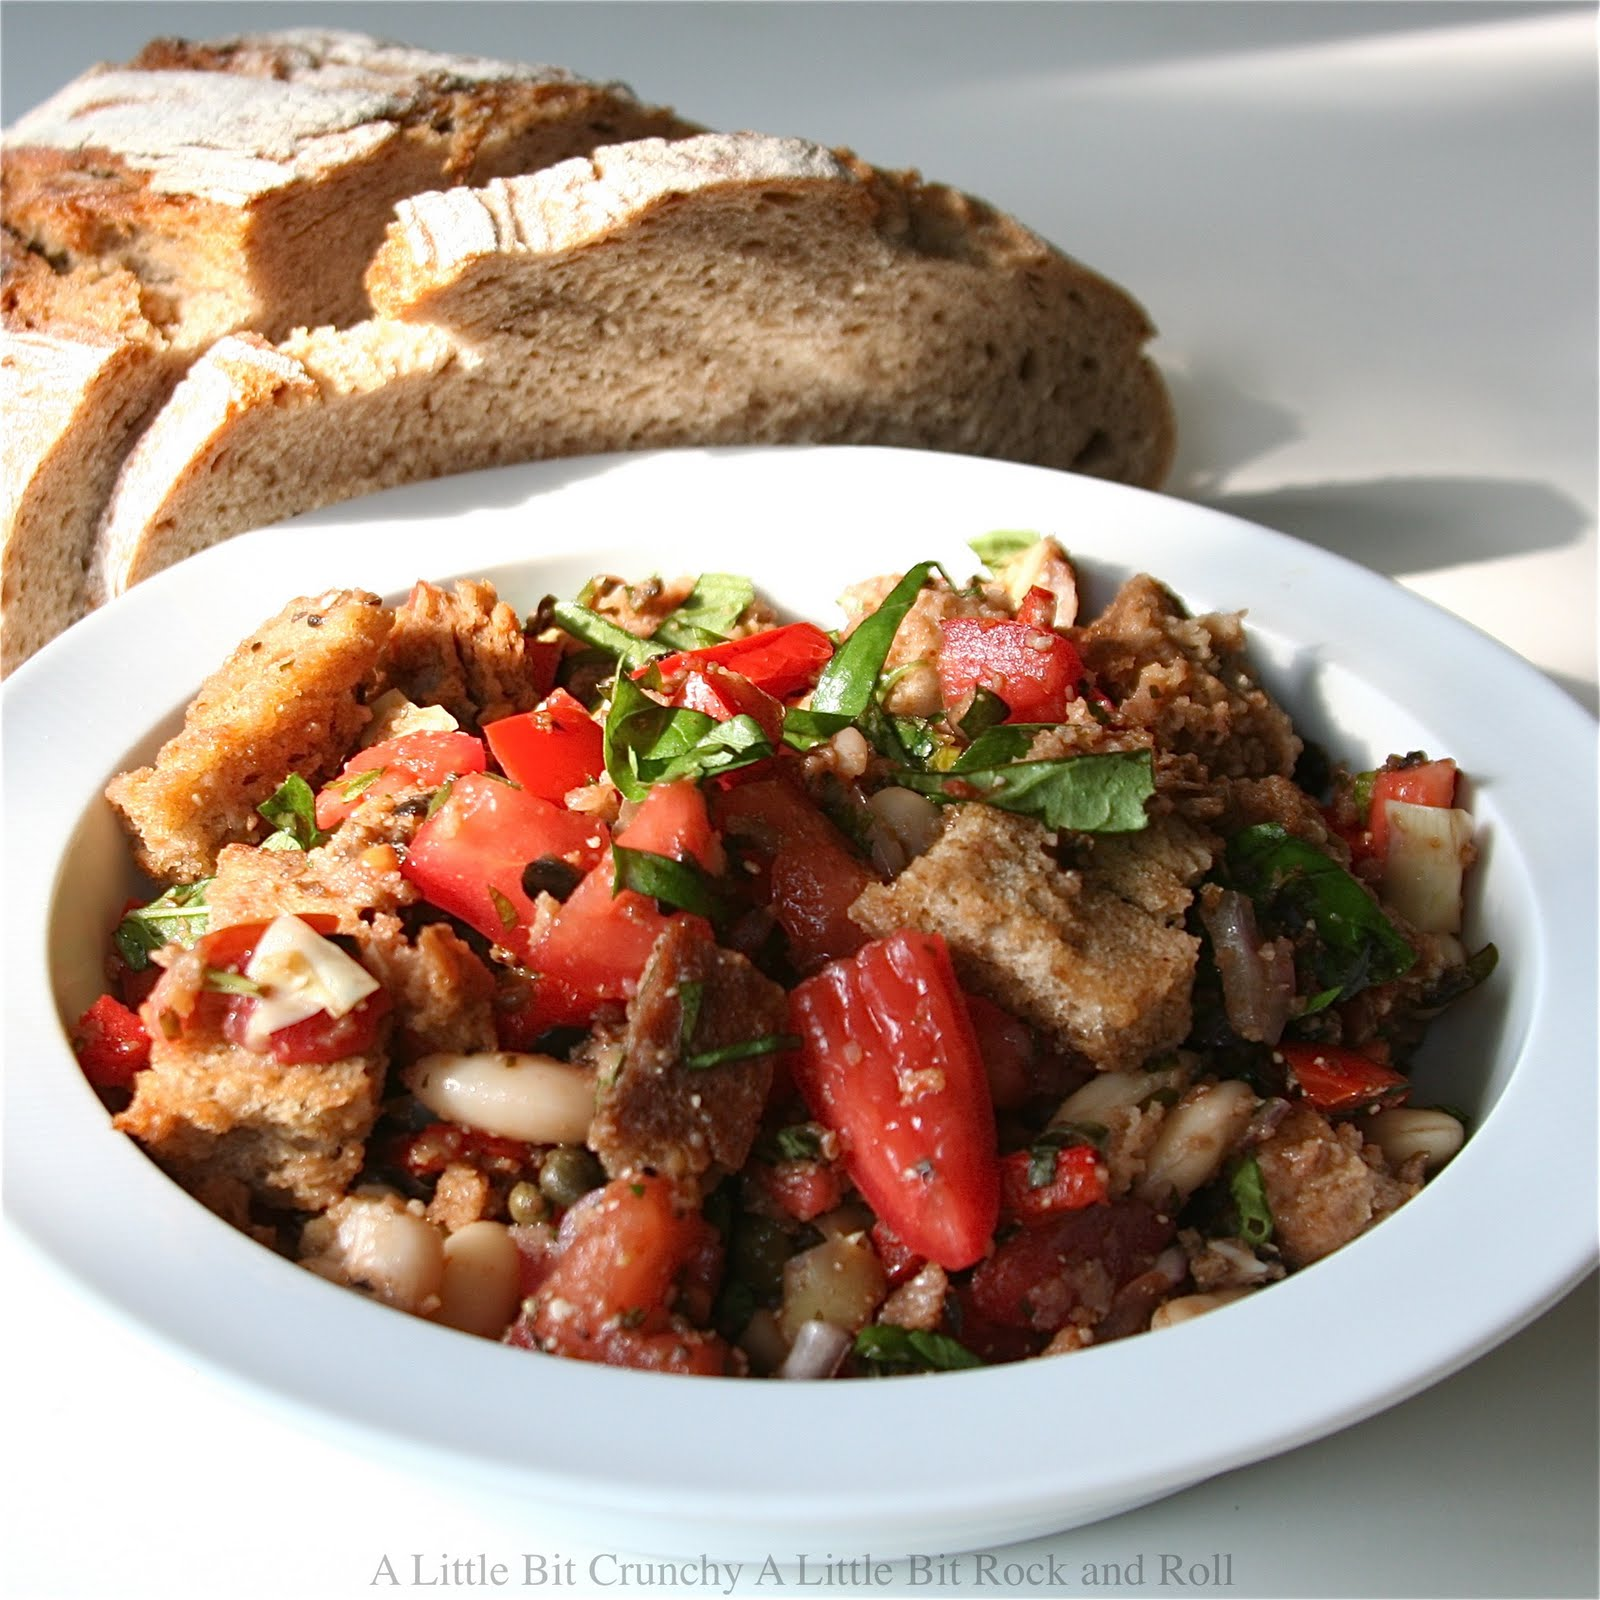 ... Crunchy A Little Bit Rock and Roll: Panzanella (Italian Bread Salad